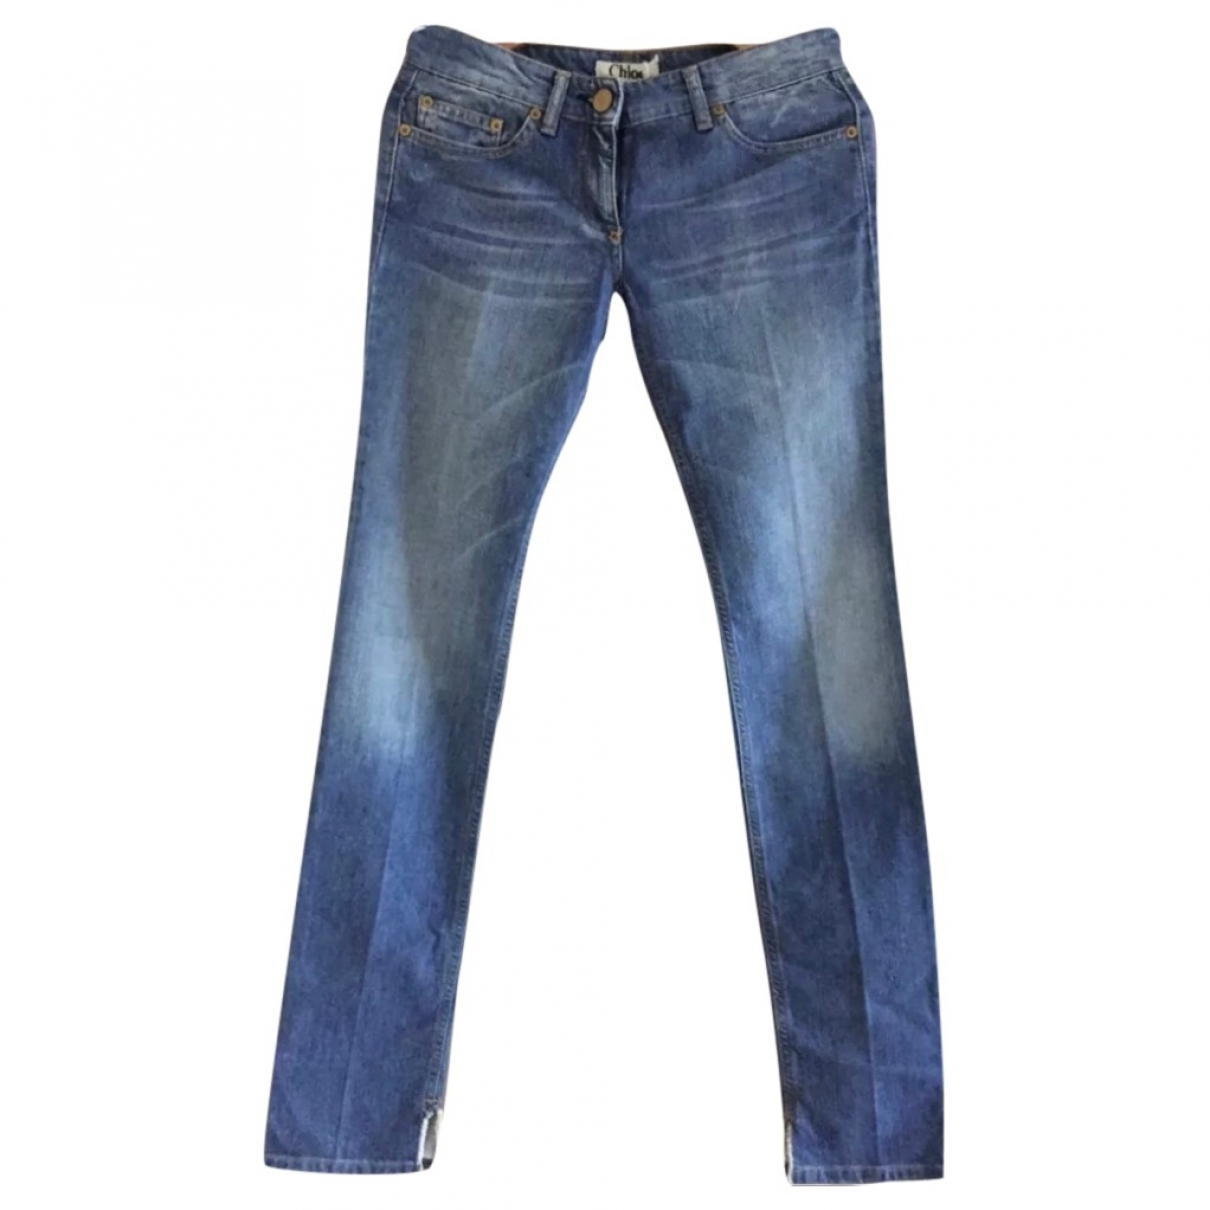 Chloé \N Blue Cotton Jeans for Women 34 FR